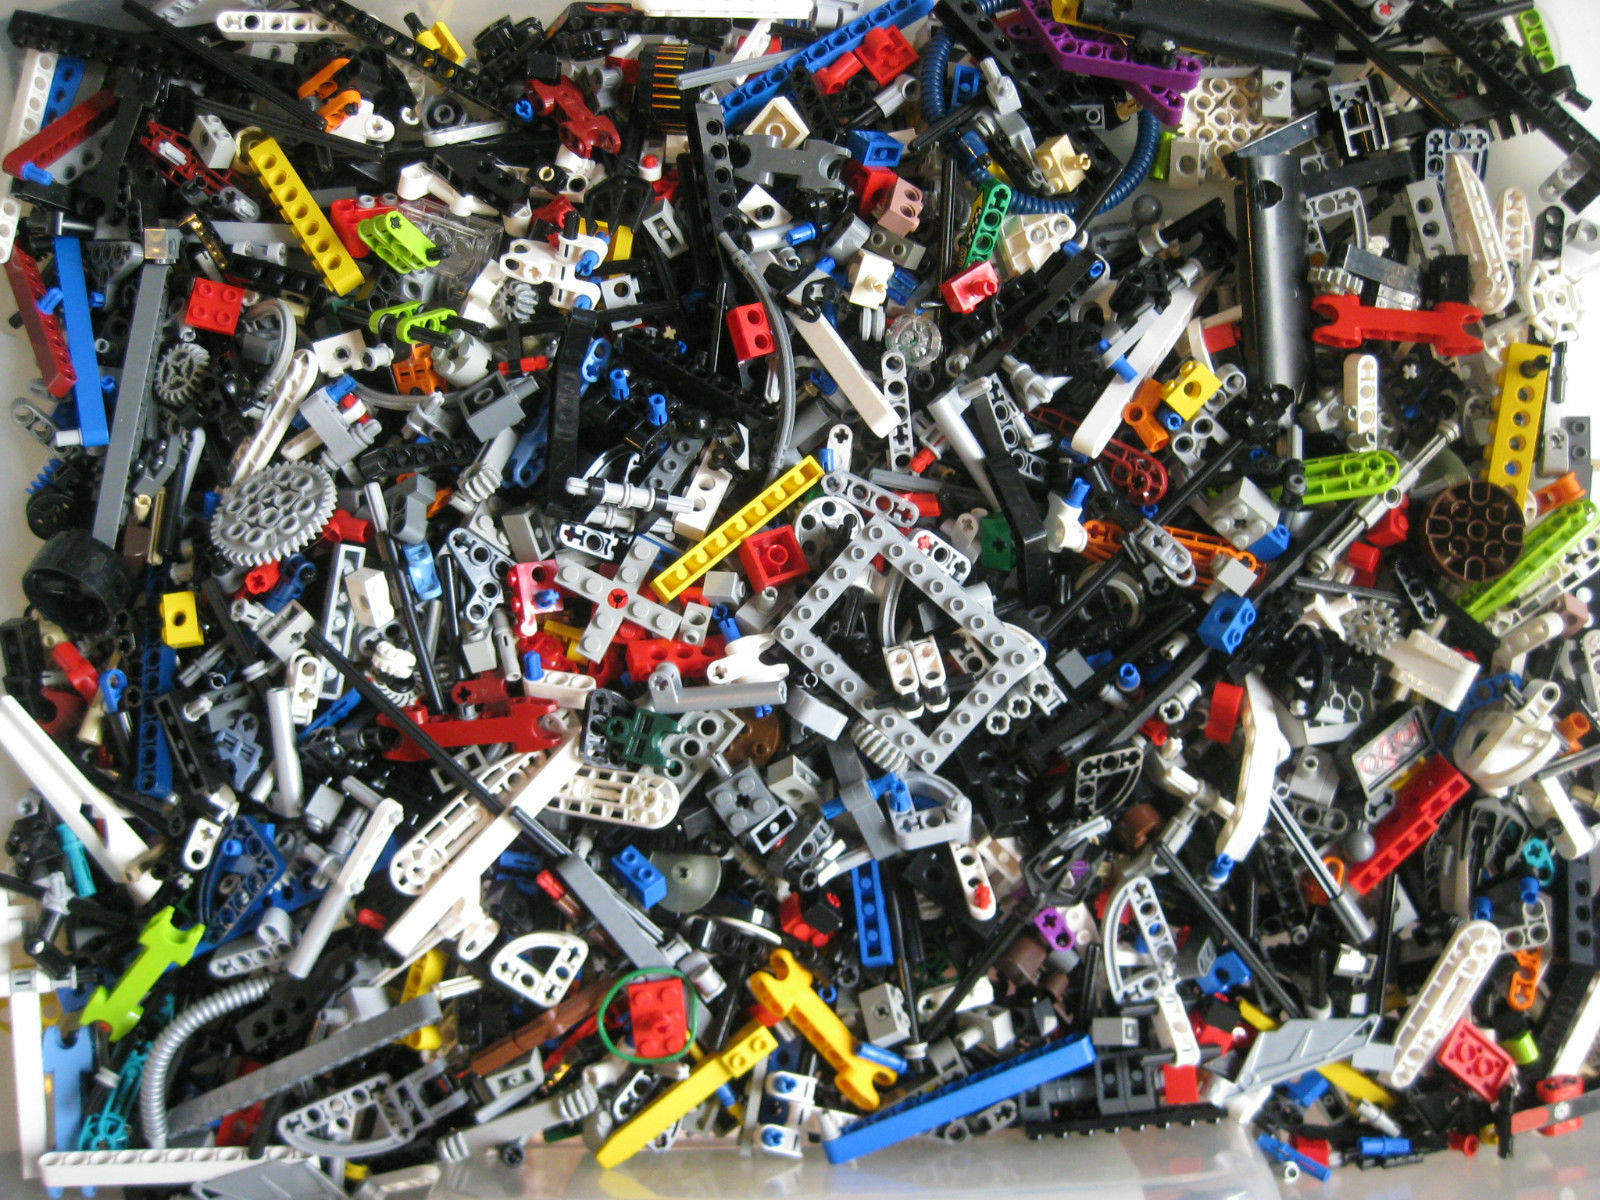 LEGO  Bulk lot TECHNIC MINDSTORM PARTS 10 lb pound Beams Gears Axles  sconto prezzo basso